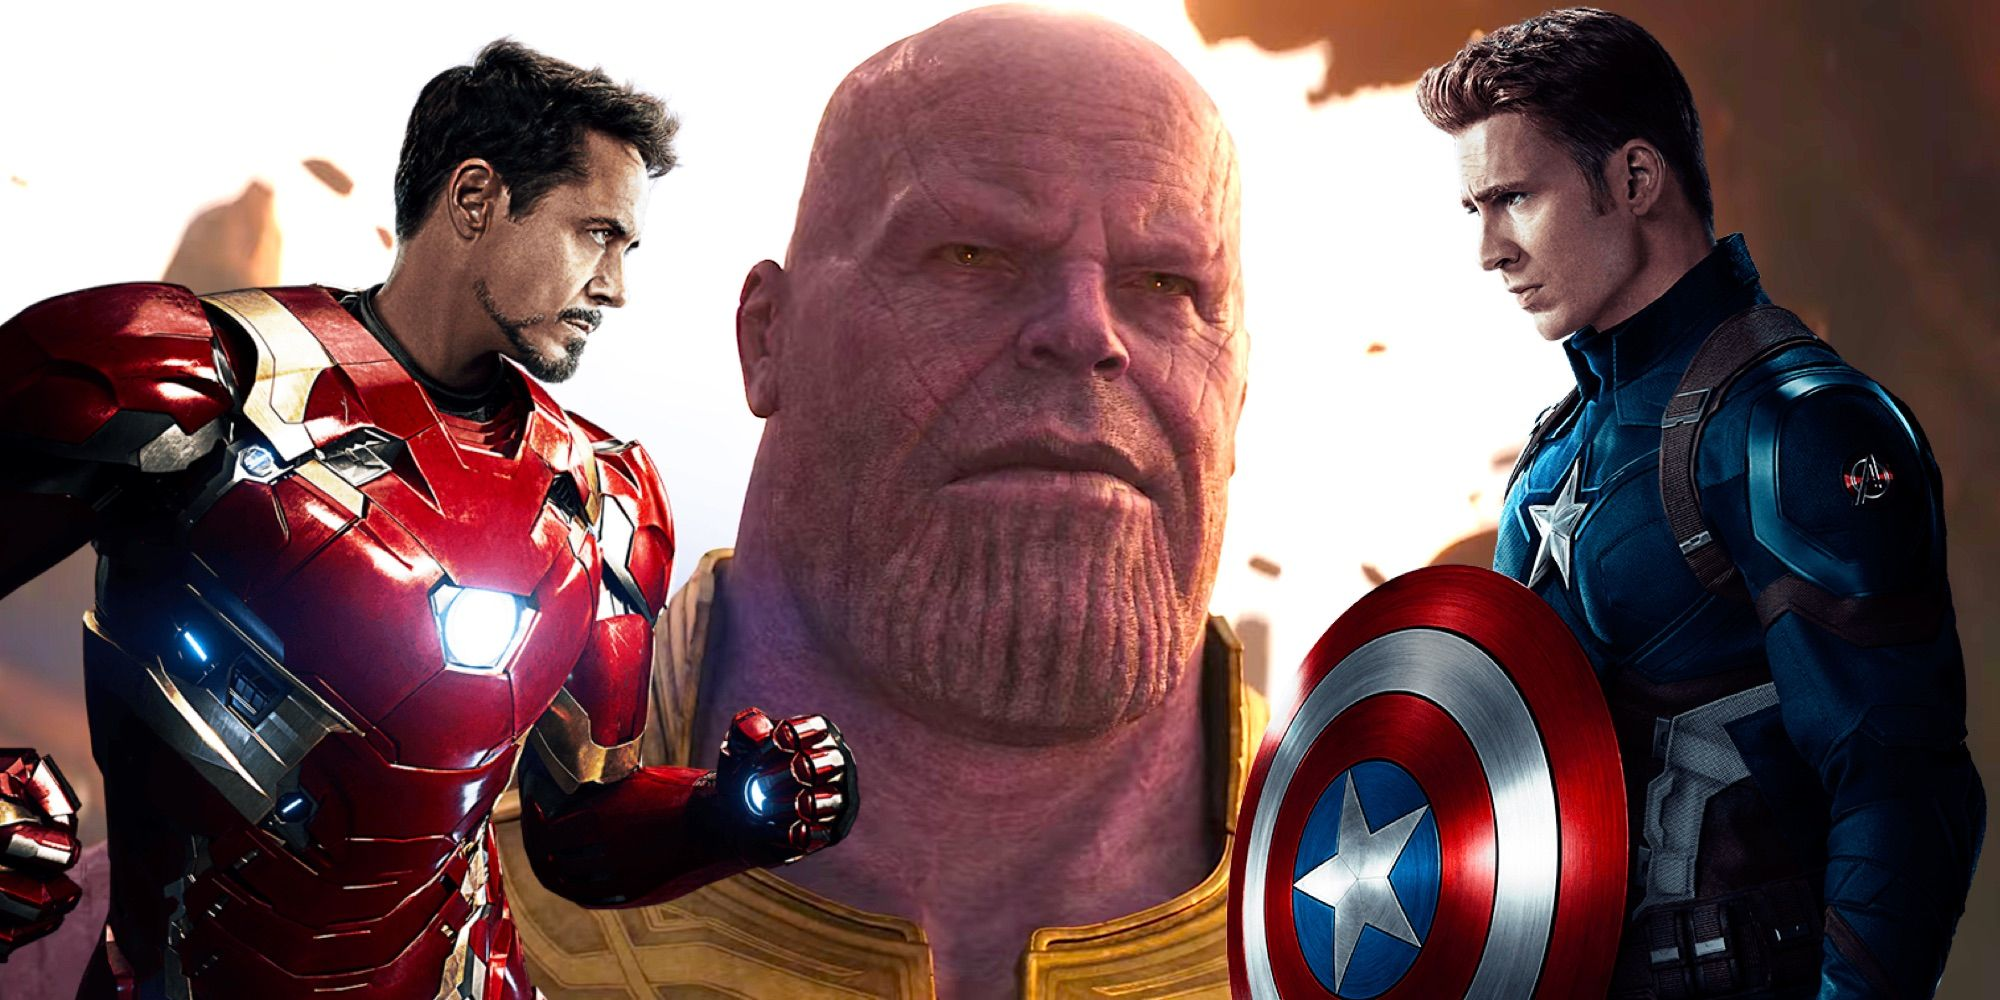 11 actors joining the mcu in 2019 (and 9 who are probably leaving)